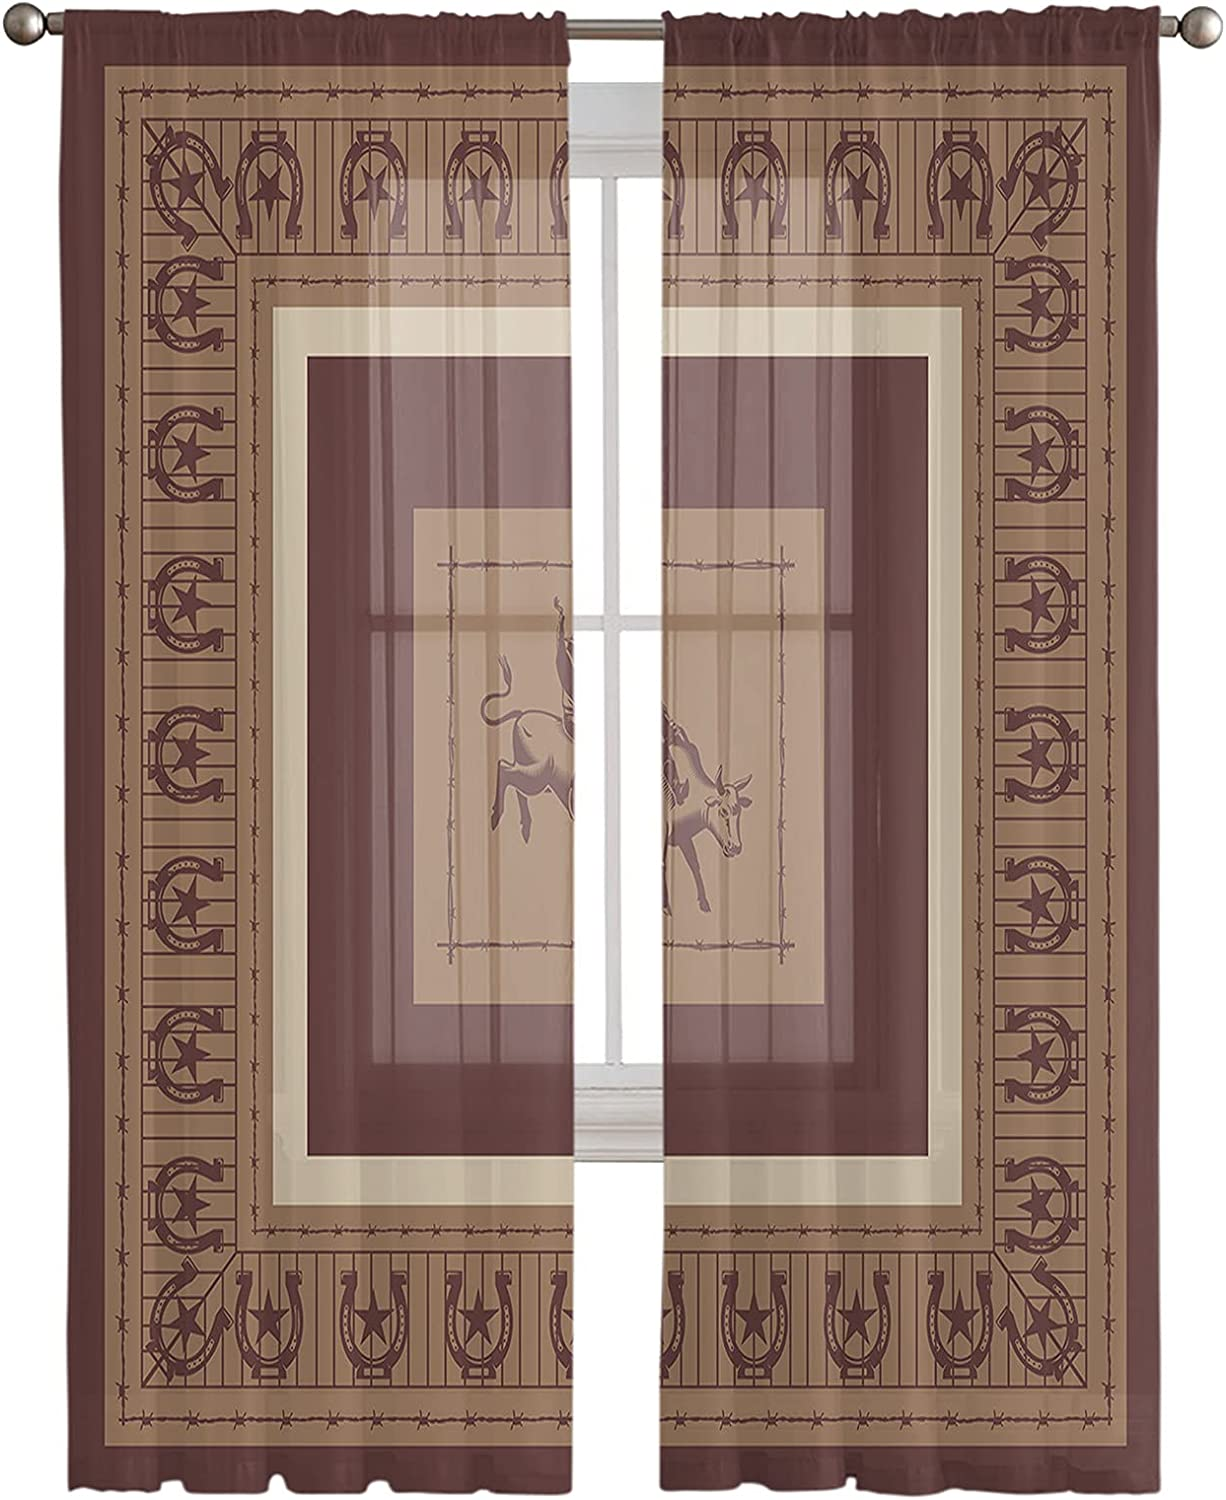 Semi Sheer Panel Curtains 108 Inch Simple Bo Financial sales sale New York Mall Length Cow Western